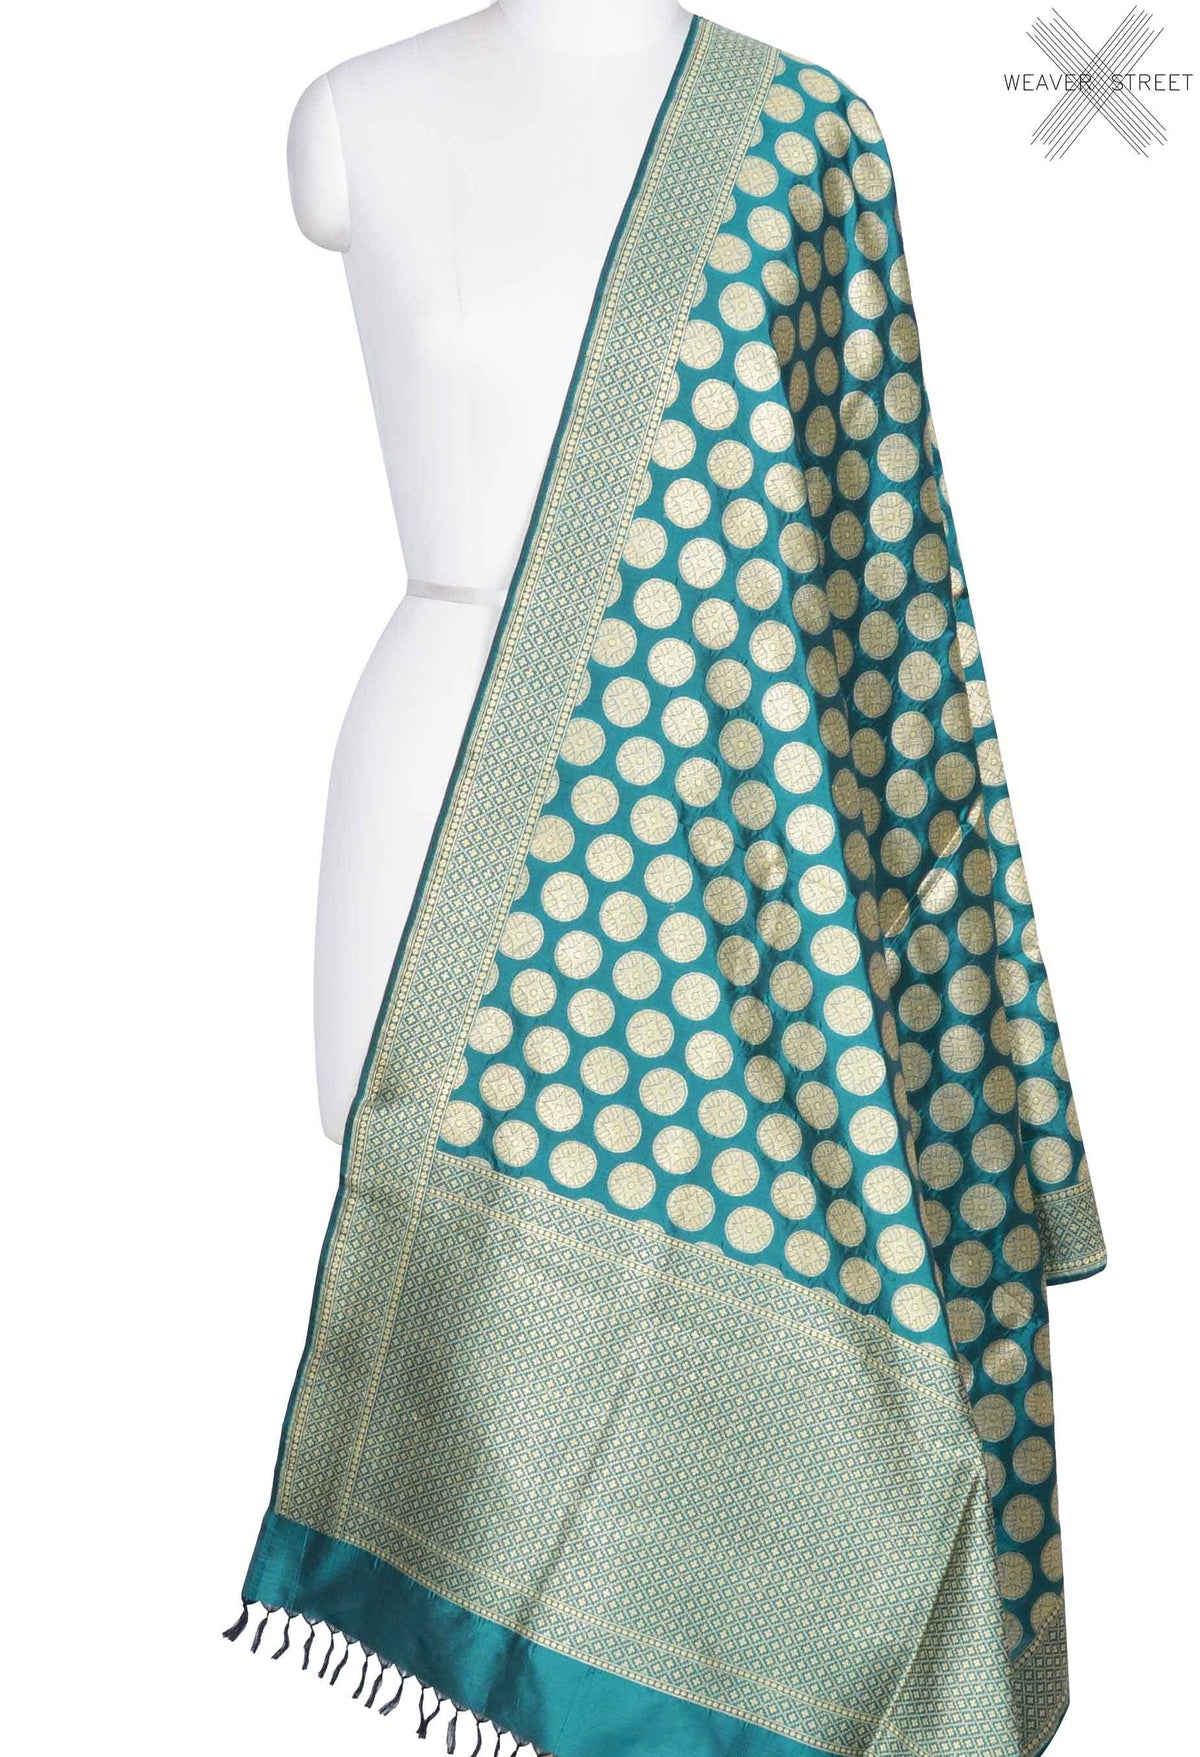 Teal Katan Silk Banarasi Dupatta with gold coin motifs (1) Main